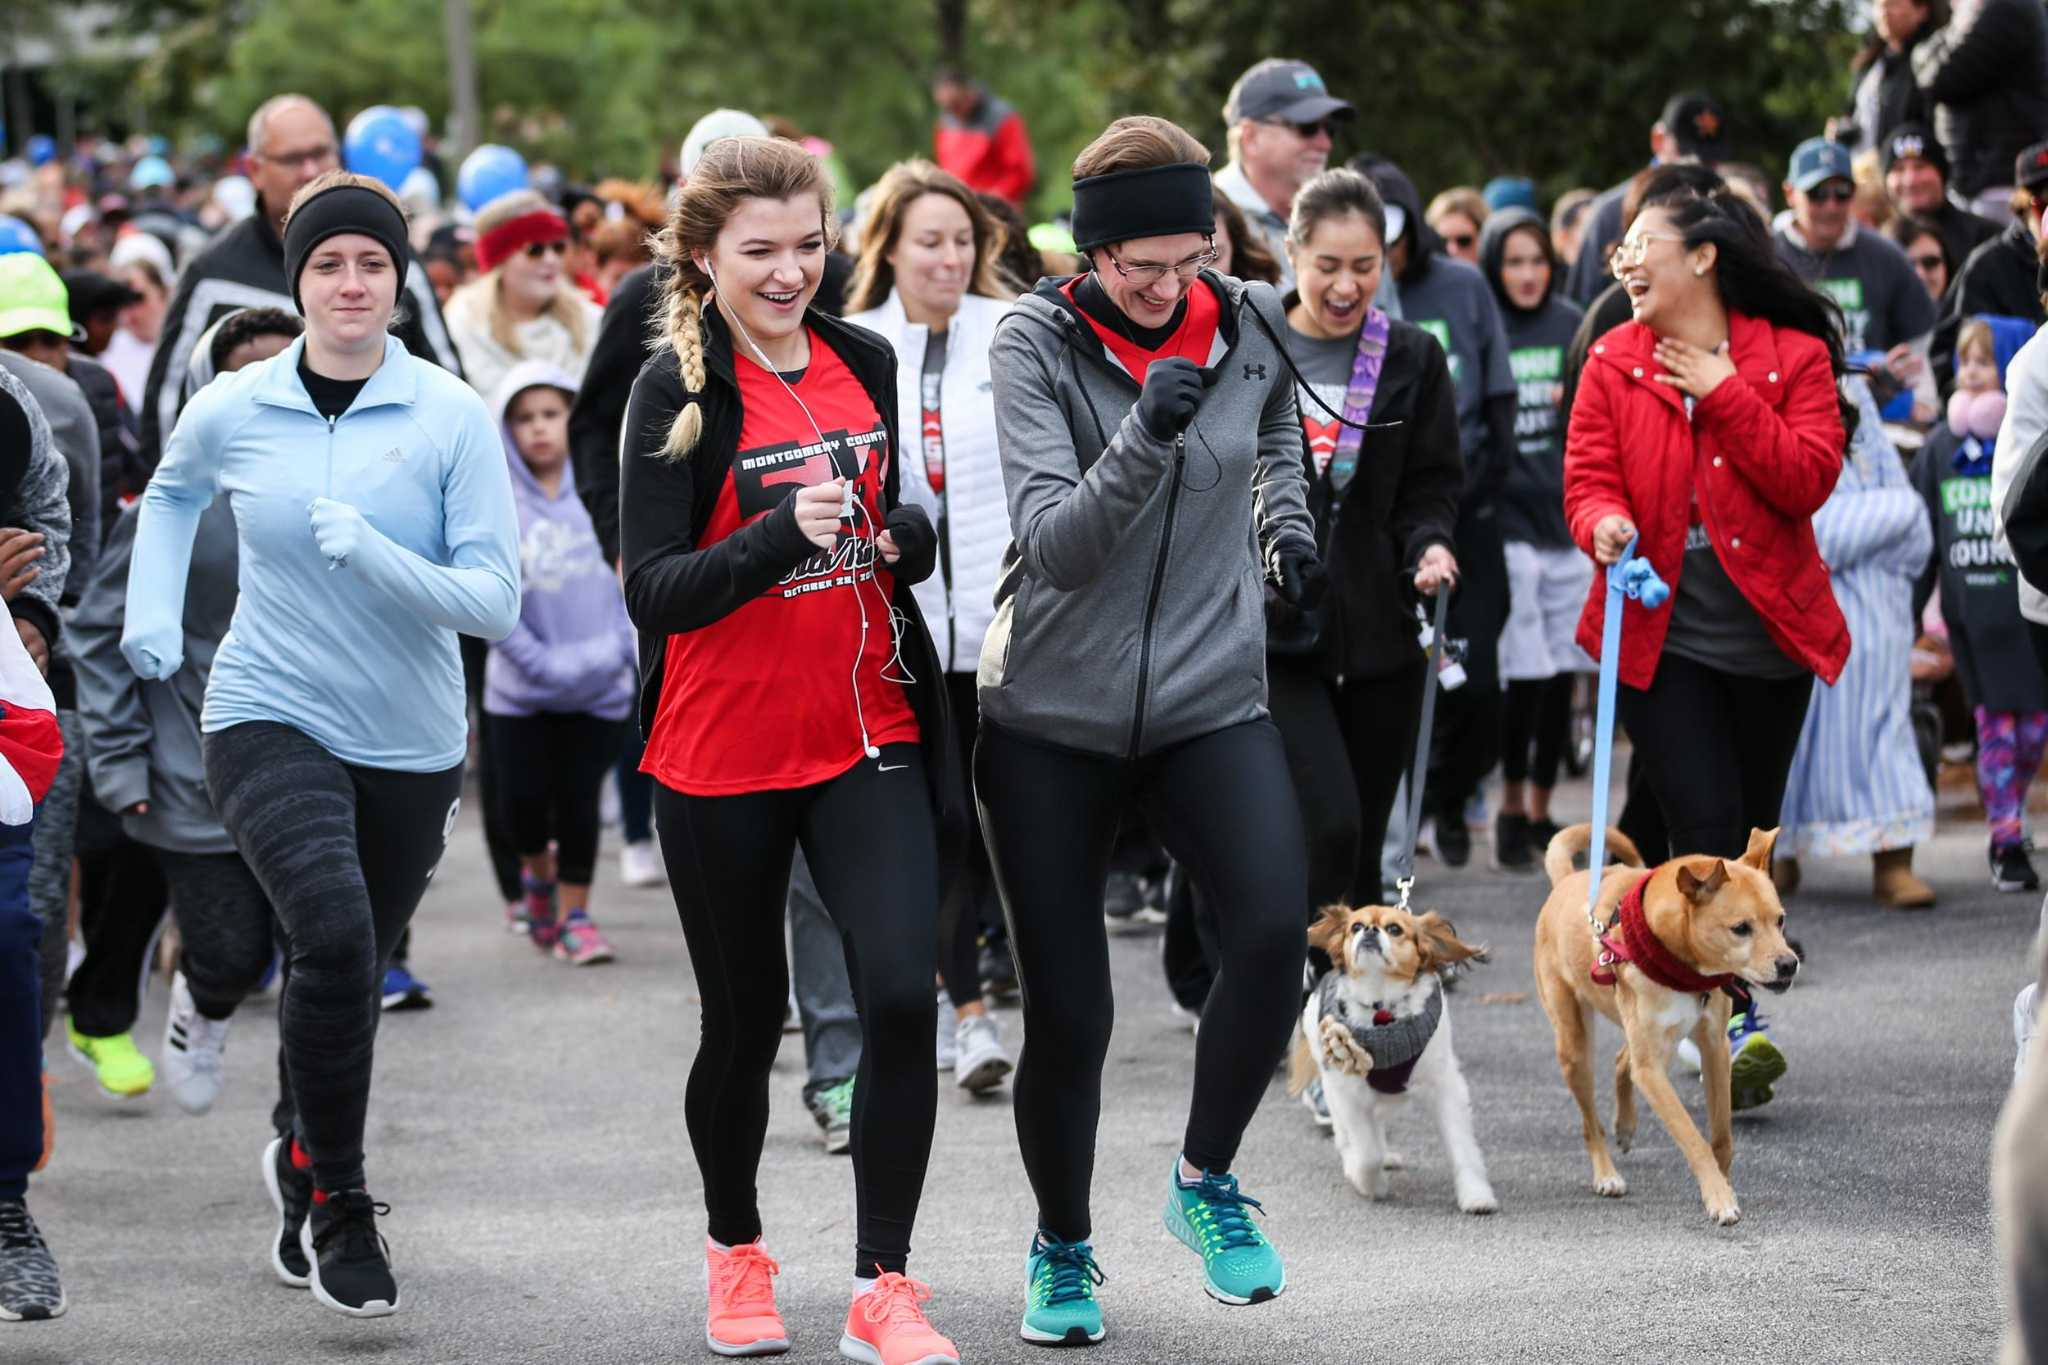 American Heart Association's Annual Heart Walk set for Saturday in Woodlands